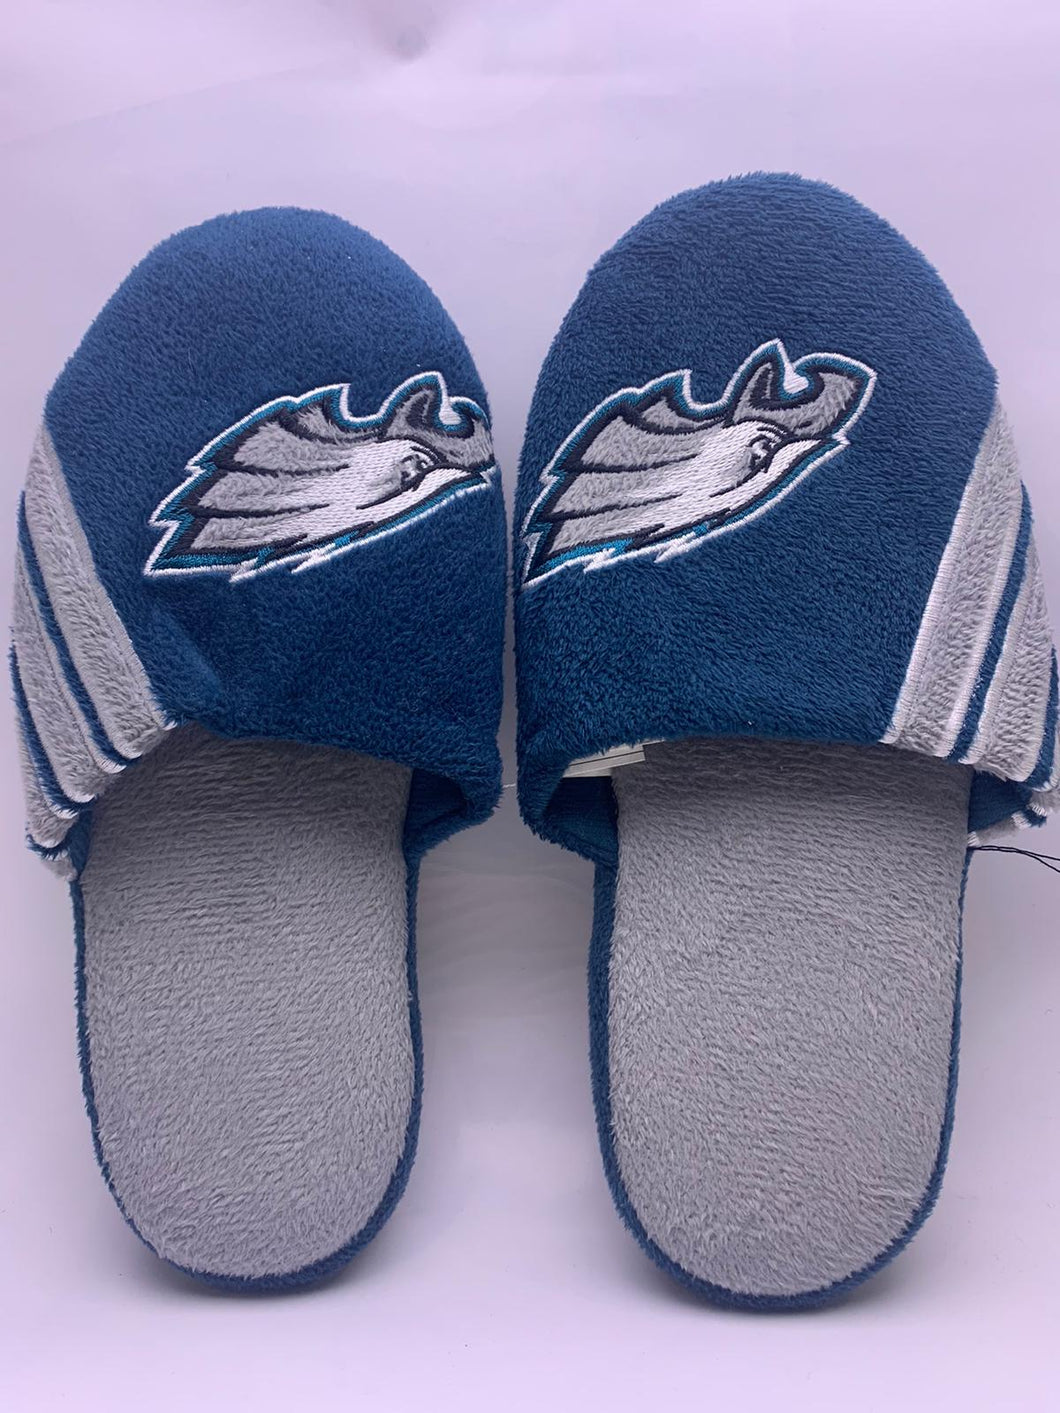 Philadephia Eagles Slippers 2